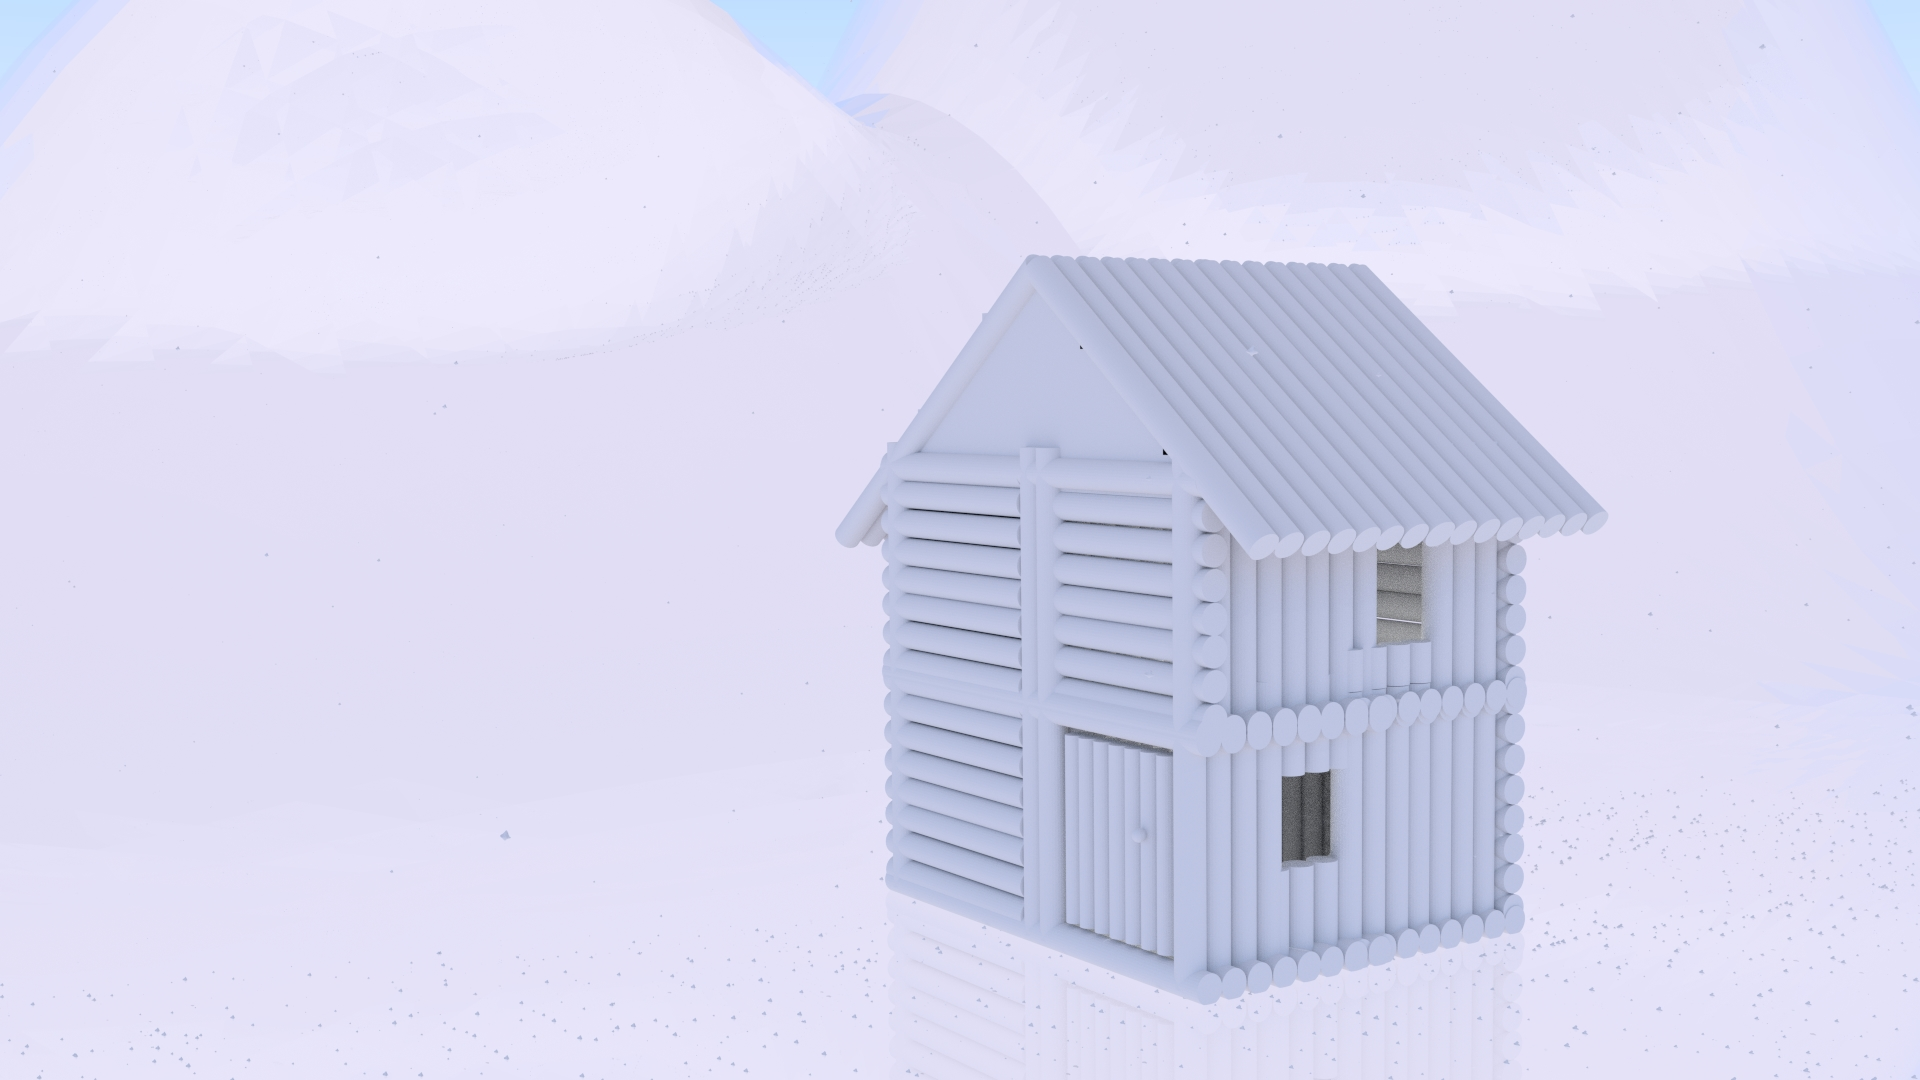 An ice home bought to life using blender (cycles)